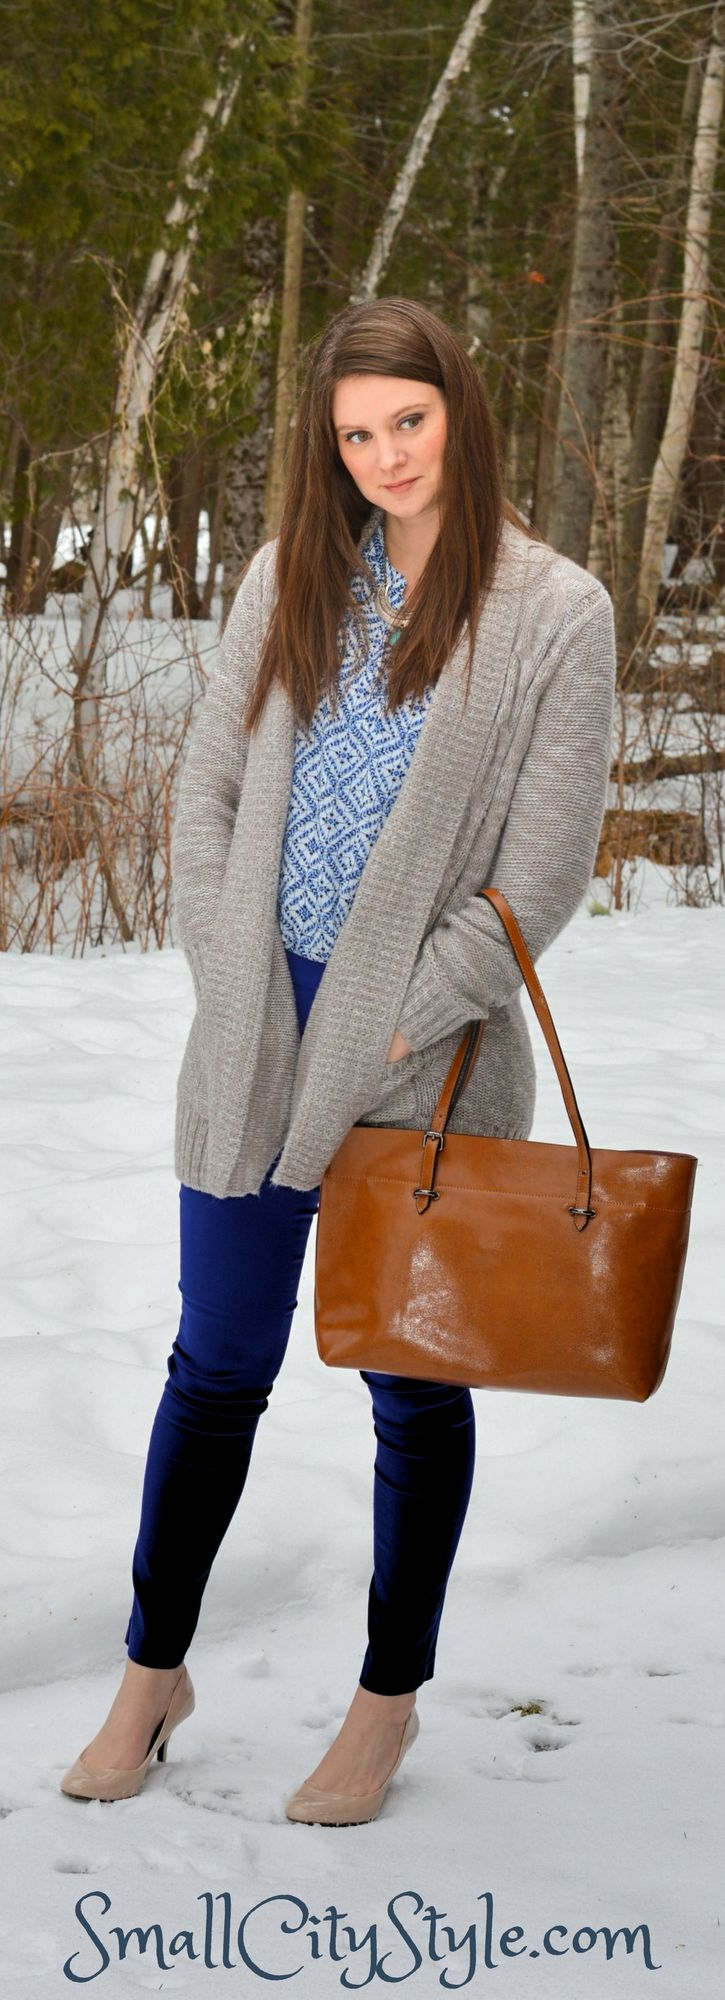 Women's winter outfit, cobalt blue pants, white and blue top, heavy knit cardigan, neutral pumps, brown leather tote.